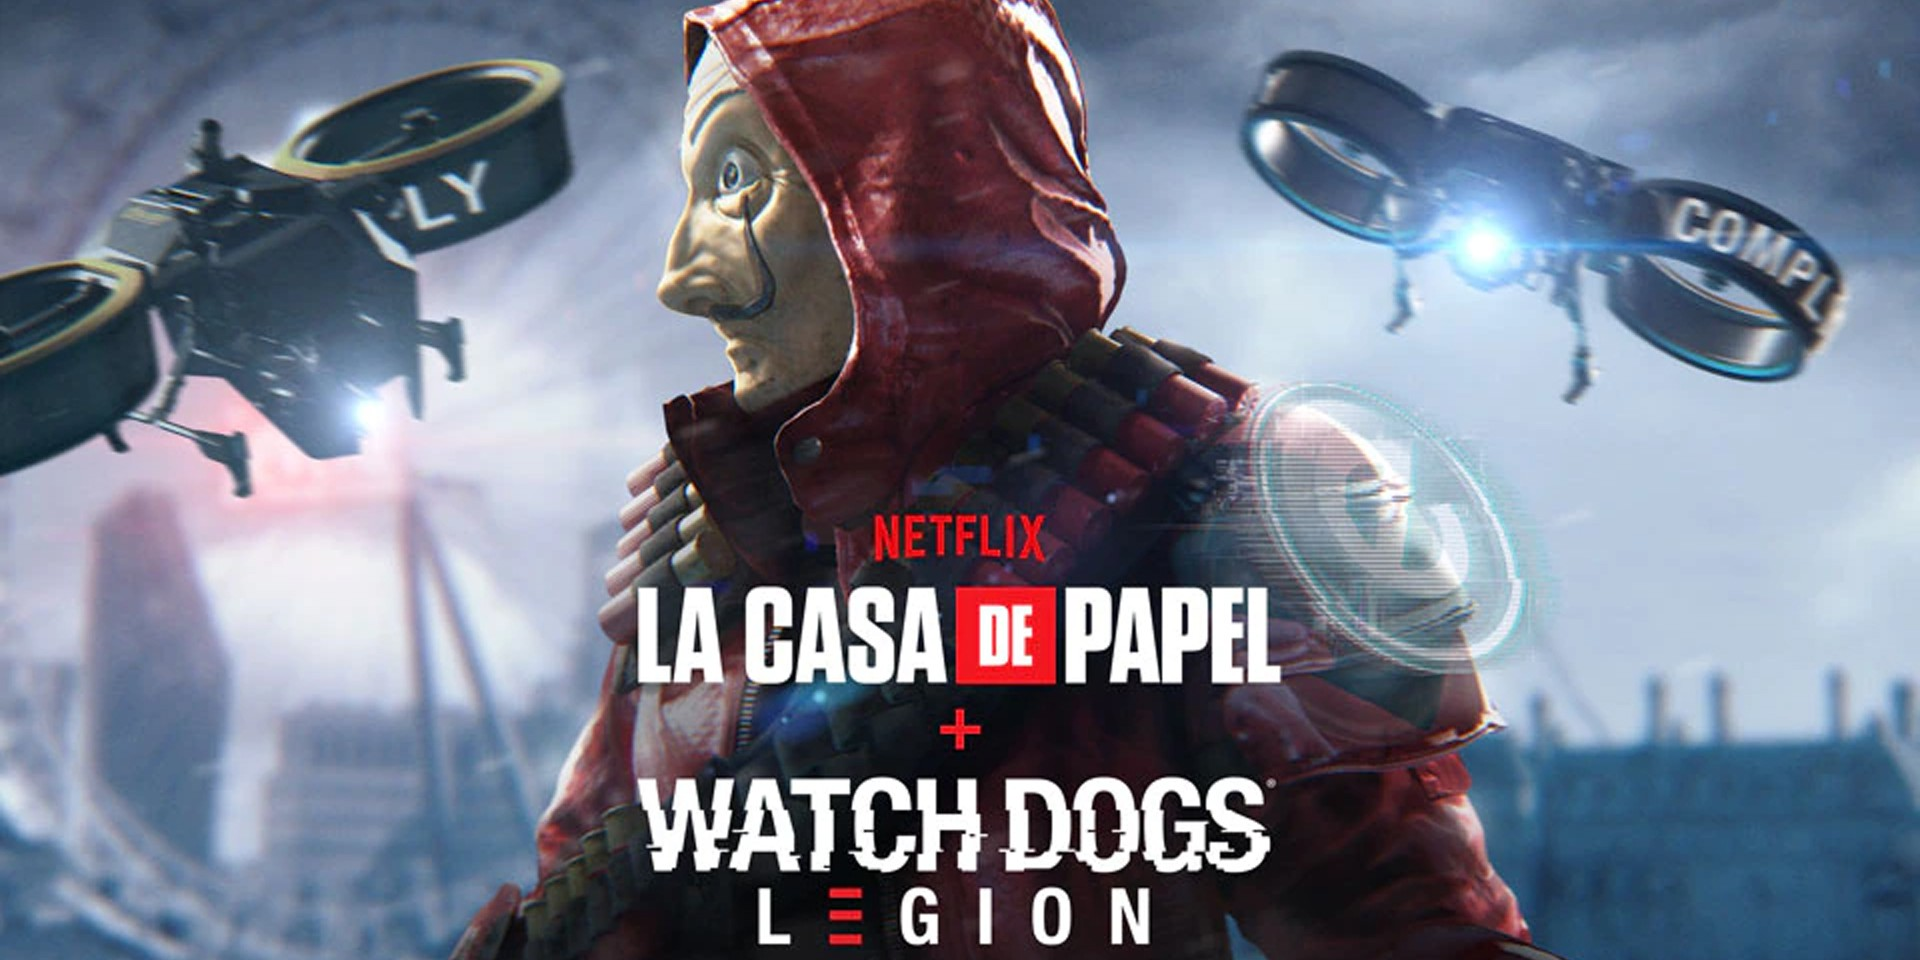 Watch Dogs: Legion available for free this weekend, launches new 'Money Heist' mission